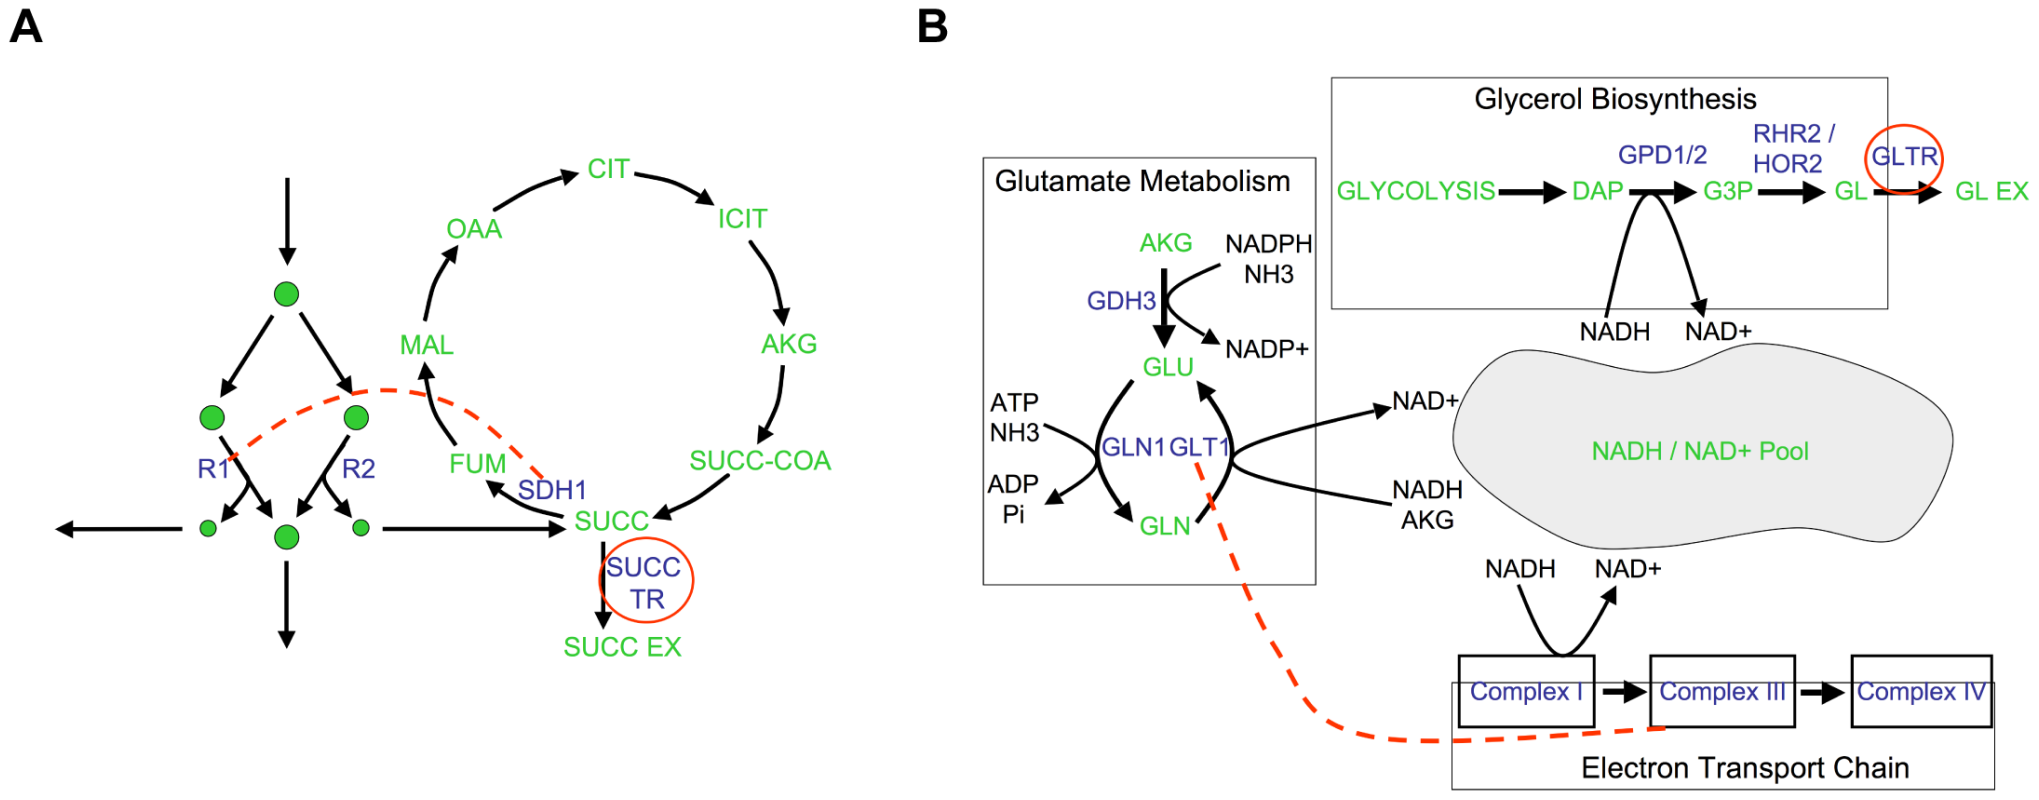 Examples of epistatic interactions (red dashed lines) with respect to flux phenotypes (red circles), overlaid on the corresponding metabolic pathways.